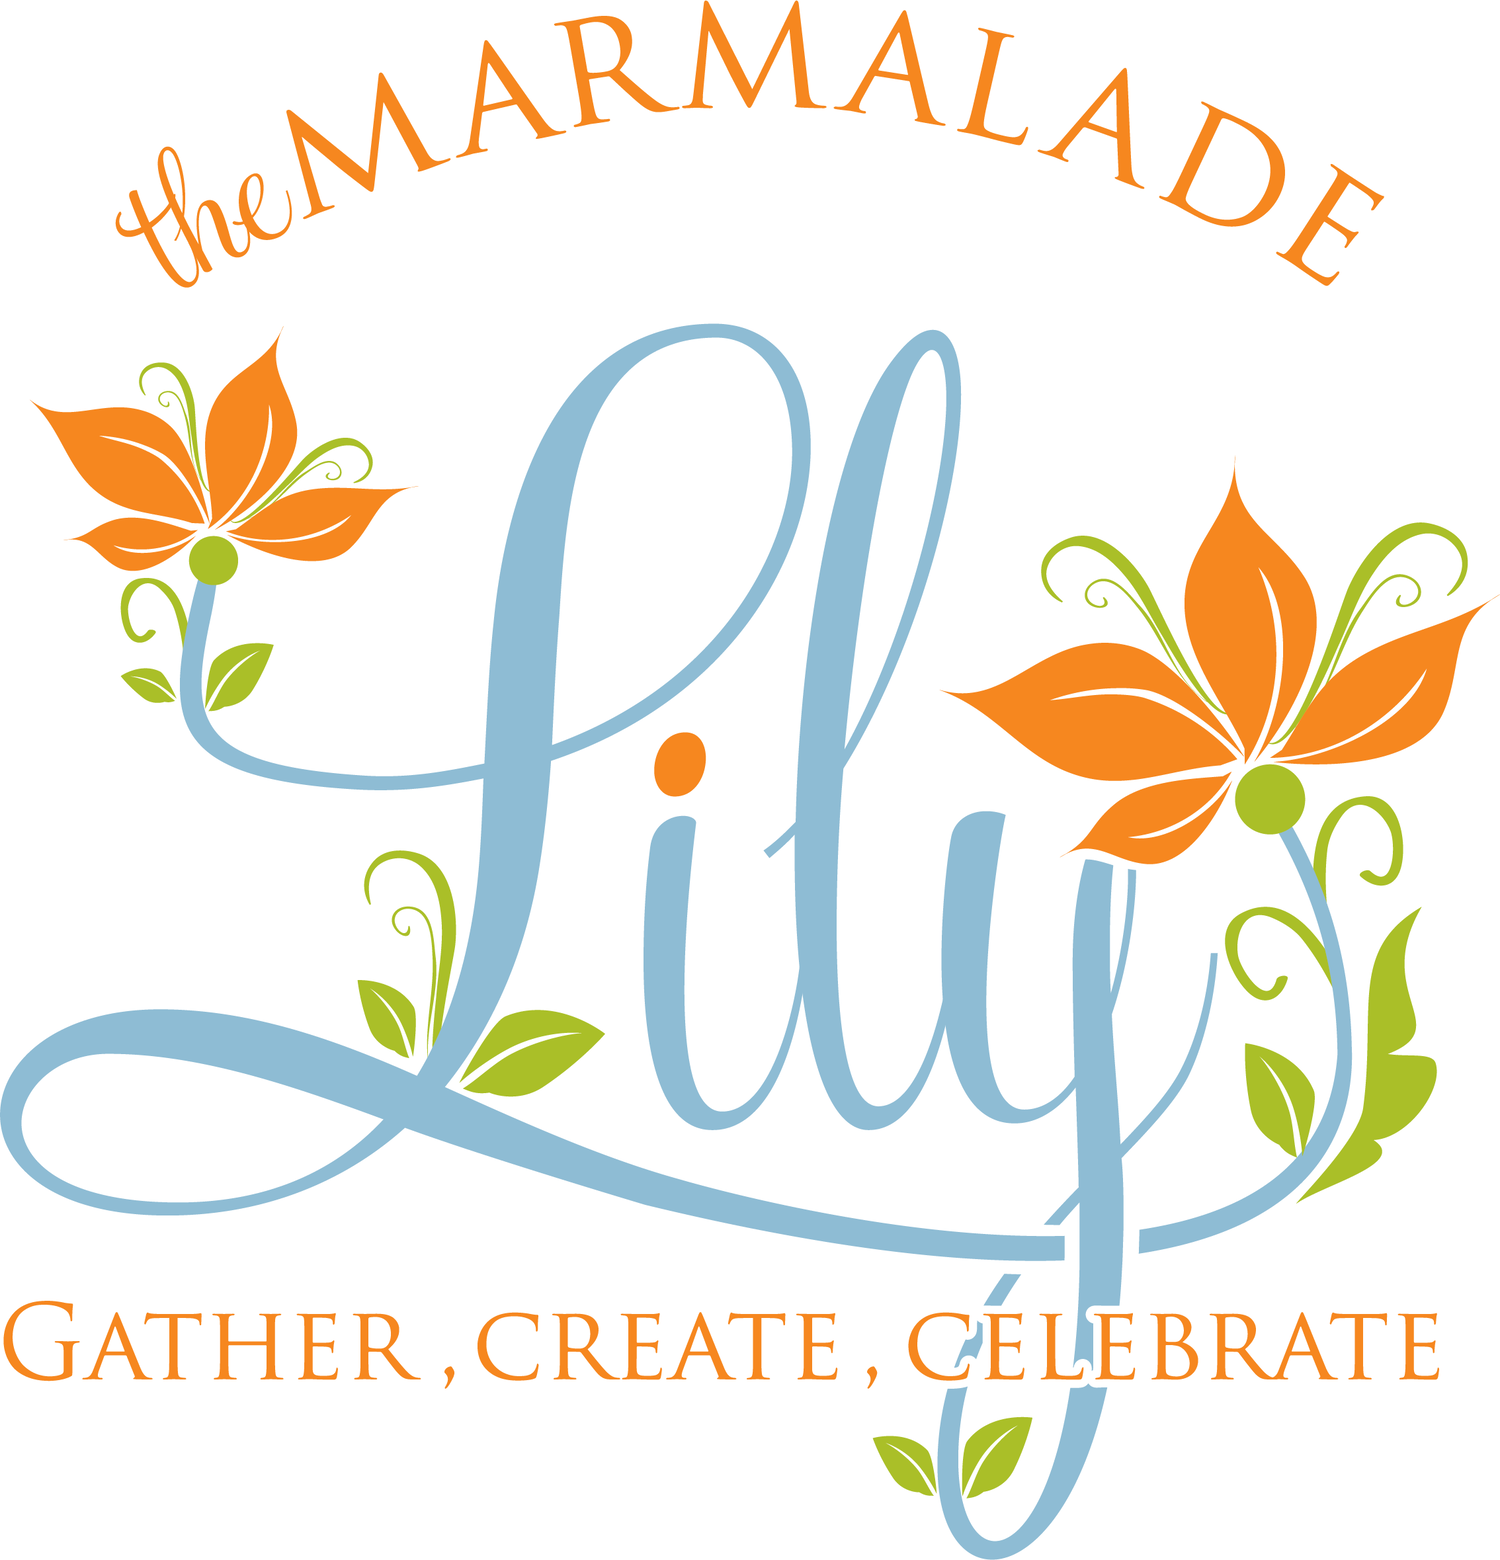 The Marmalade Lilly